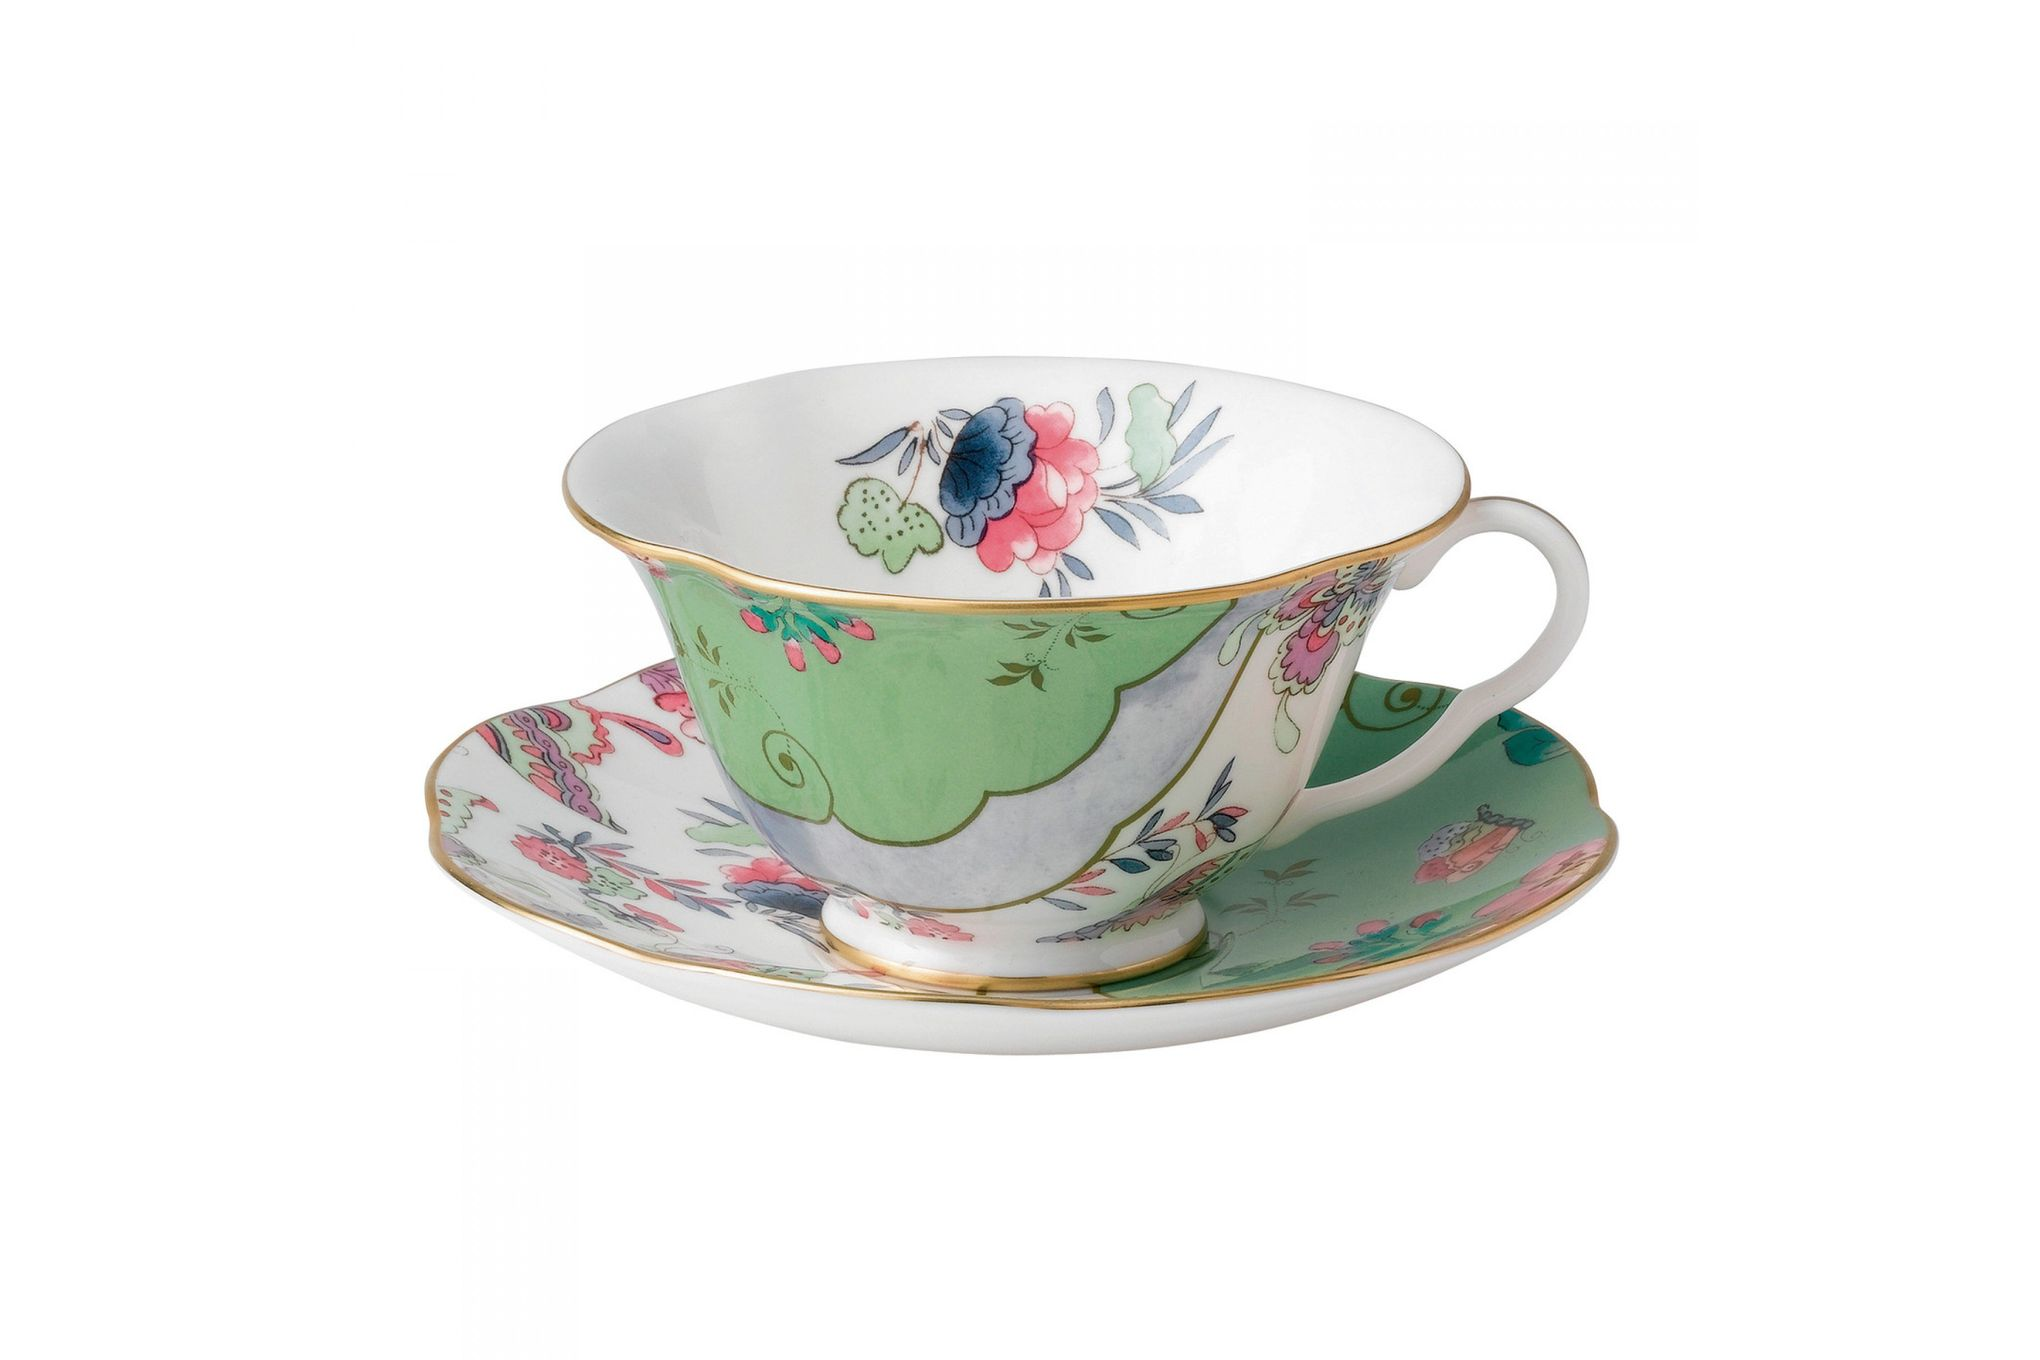 Wedgwood Butterfly Bloom Teacup & Saucer Green thumb 1